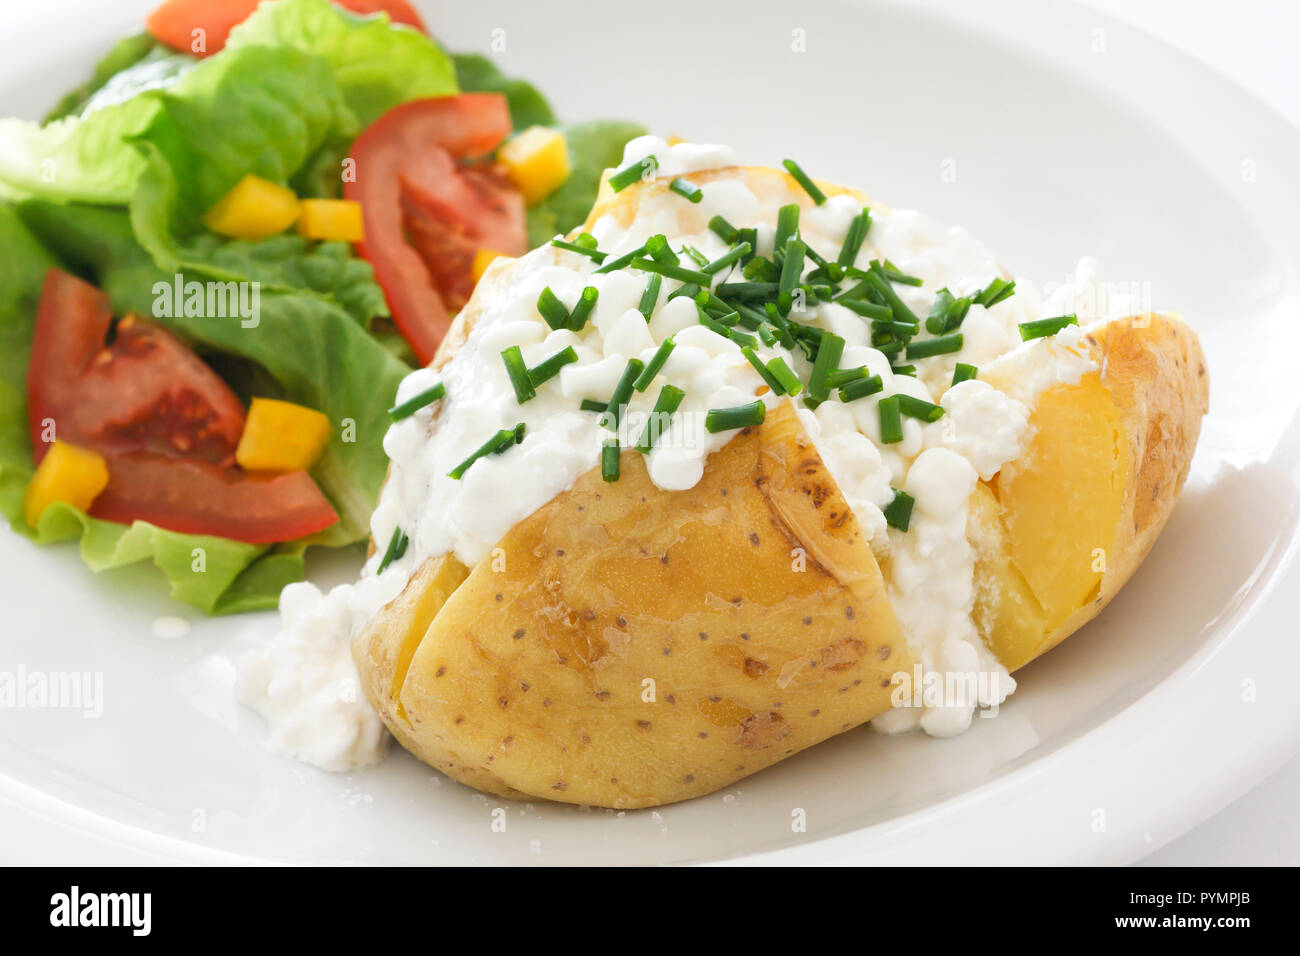 Remarkable Baked Potato With Cottage Cheese Chives And Fresh Salad On Download Free Architecture Designs Scobabritishbridgeorg